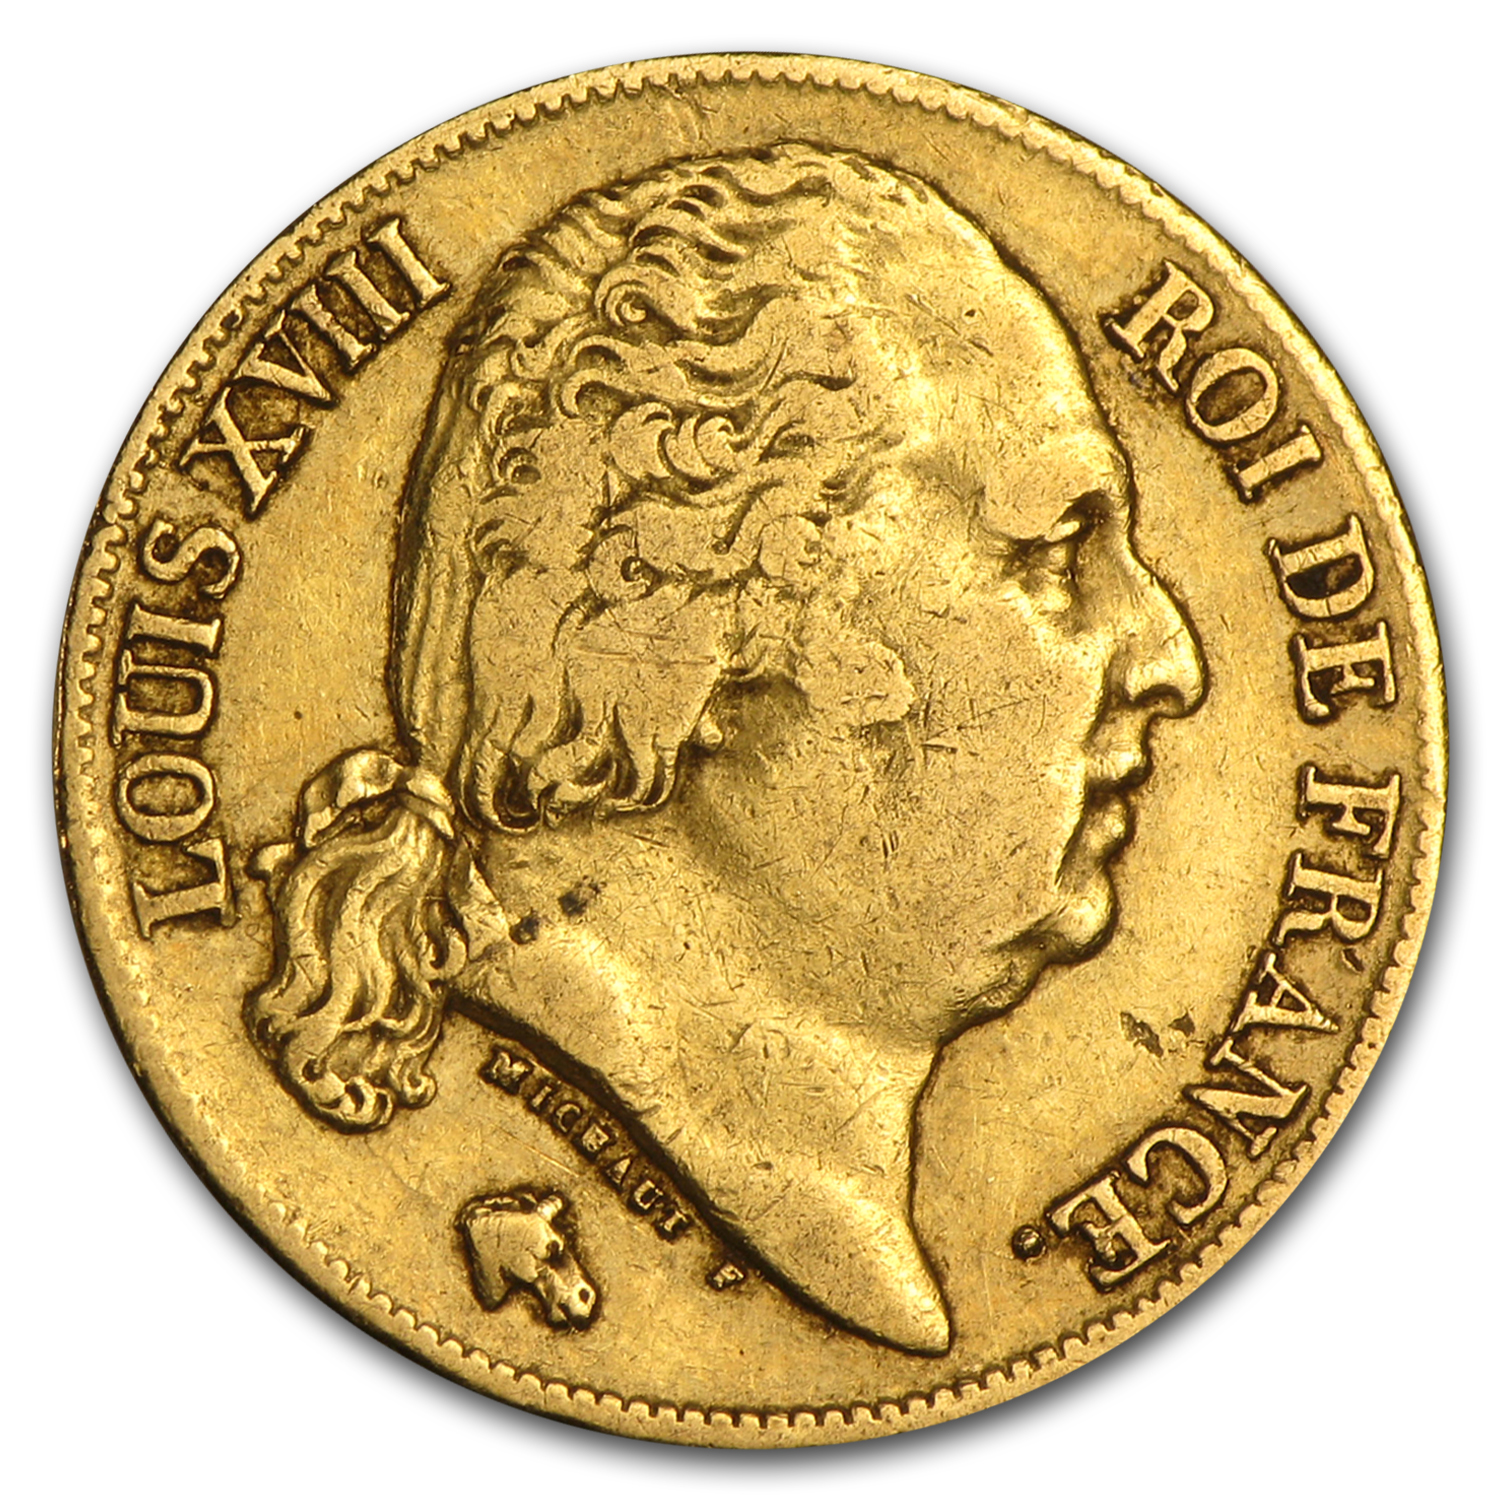 1816-1824 France Gold 20 Francs Louis XVIII Average Circ